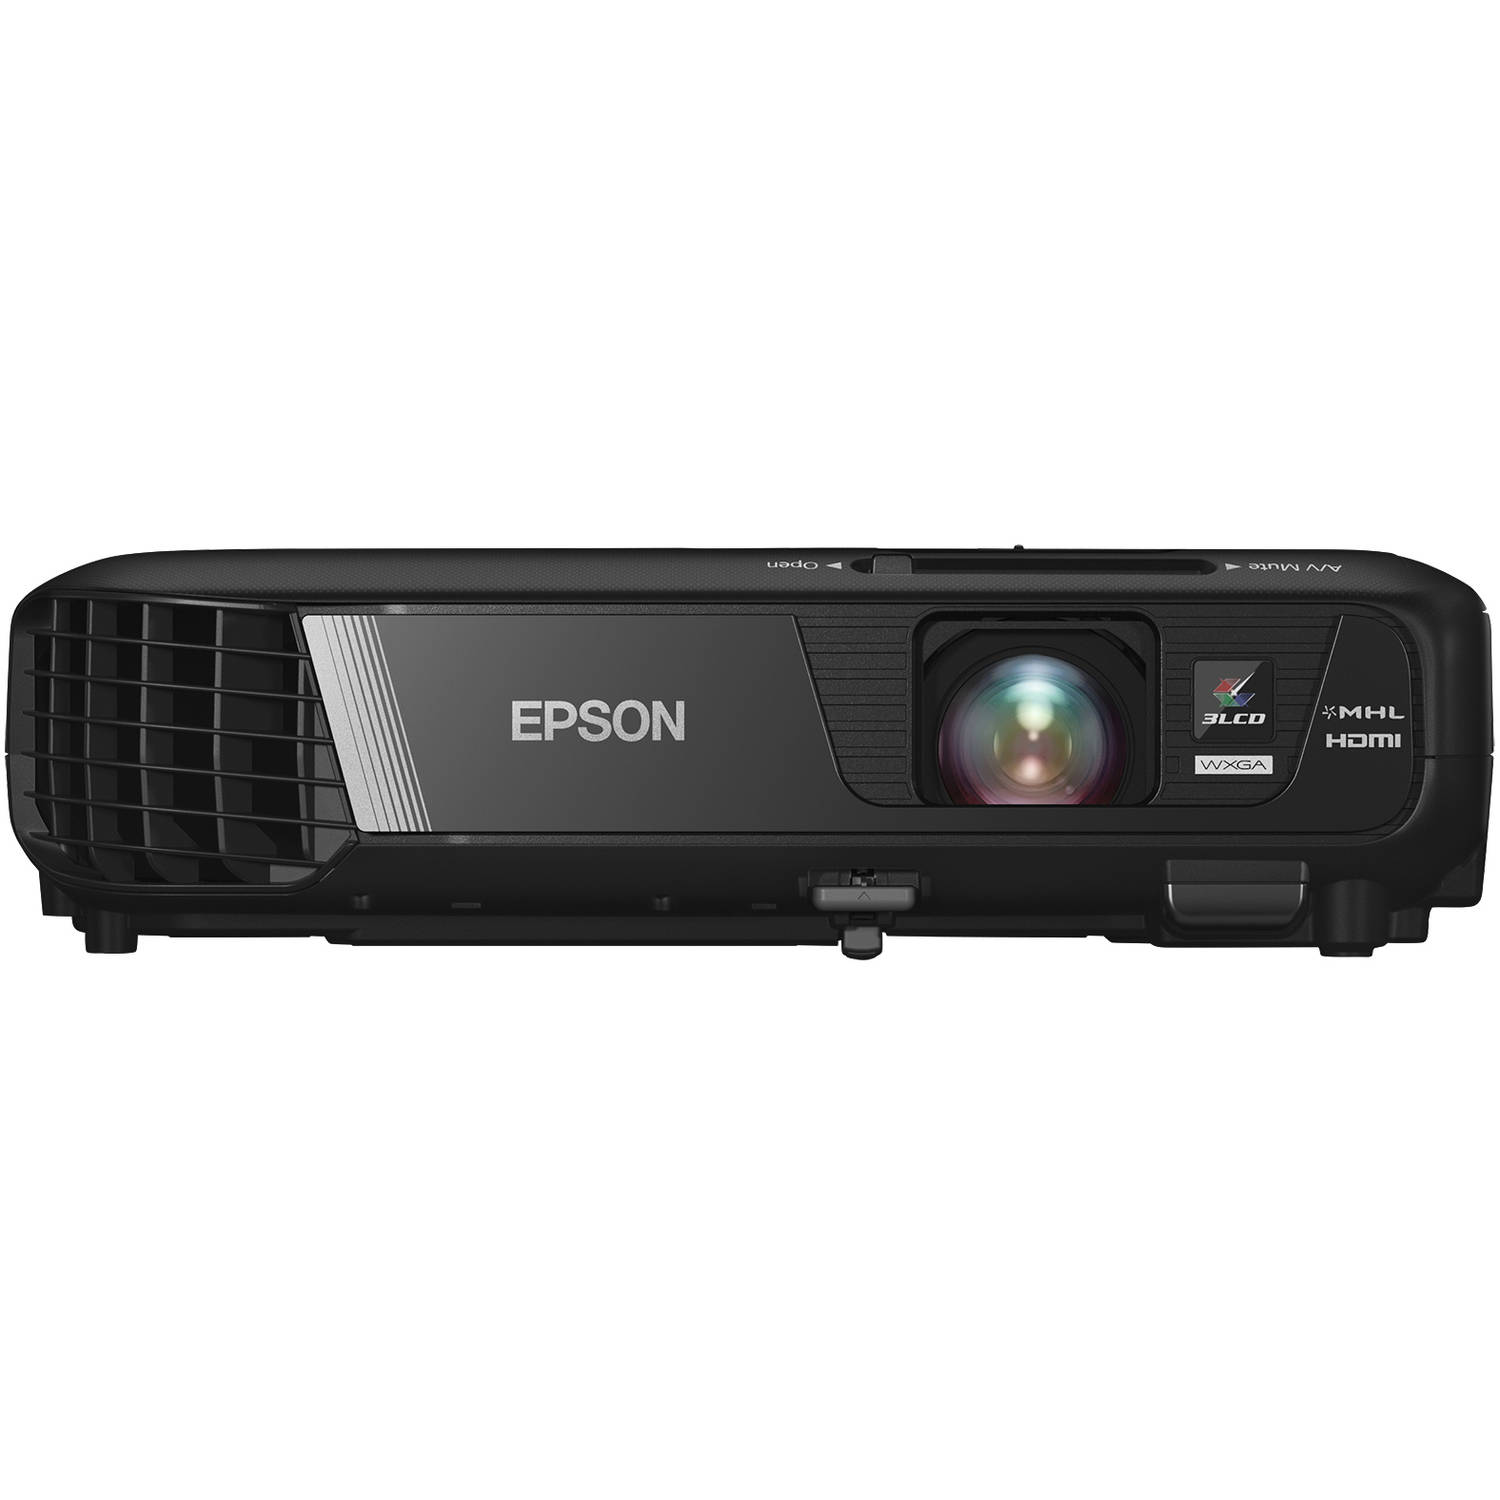 Epson EX7240 Pro Wireless Business Projector by Epson